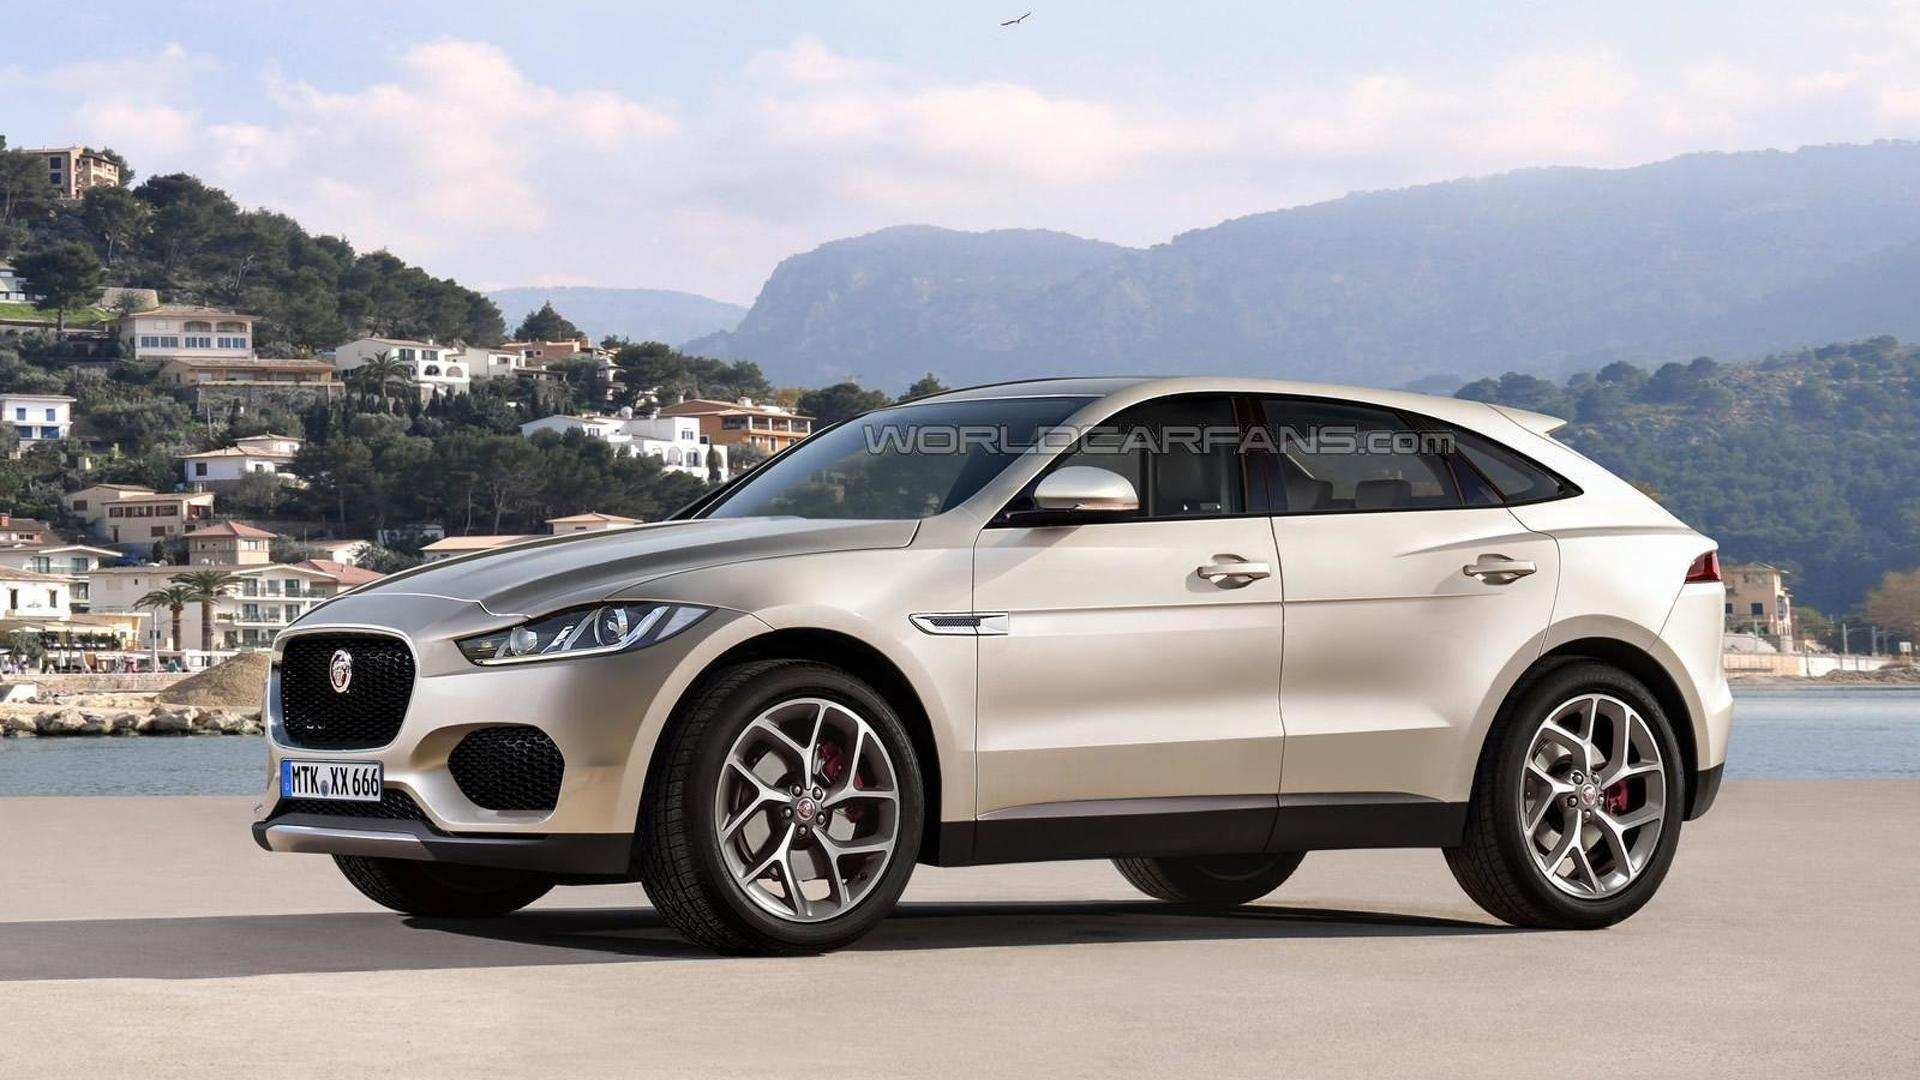 28 Best 2020 Jaguar C X17 Crossover Interior